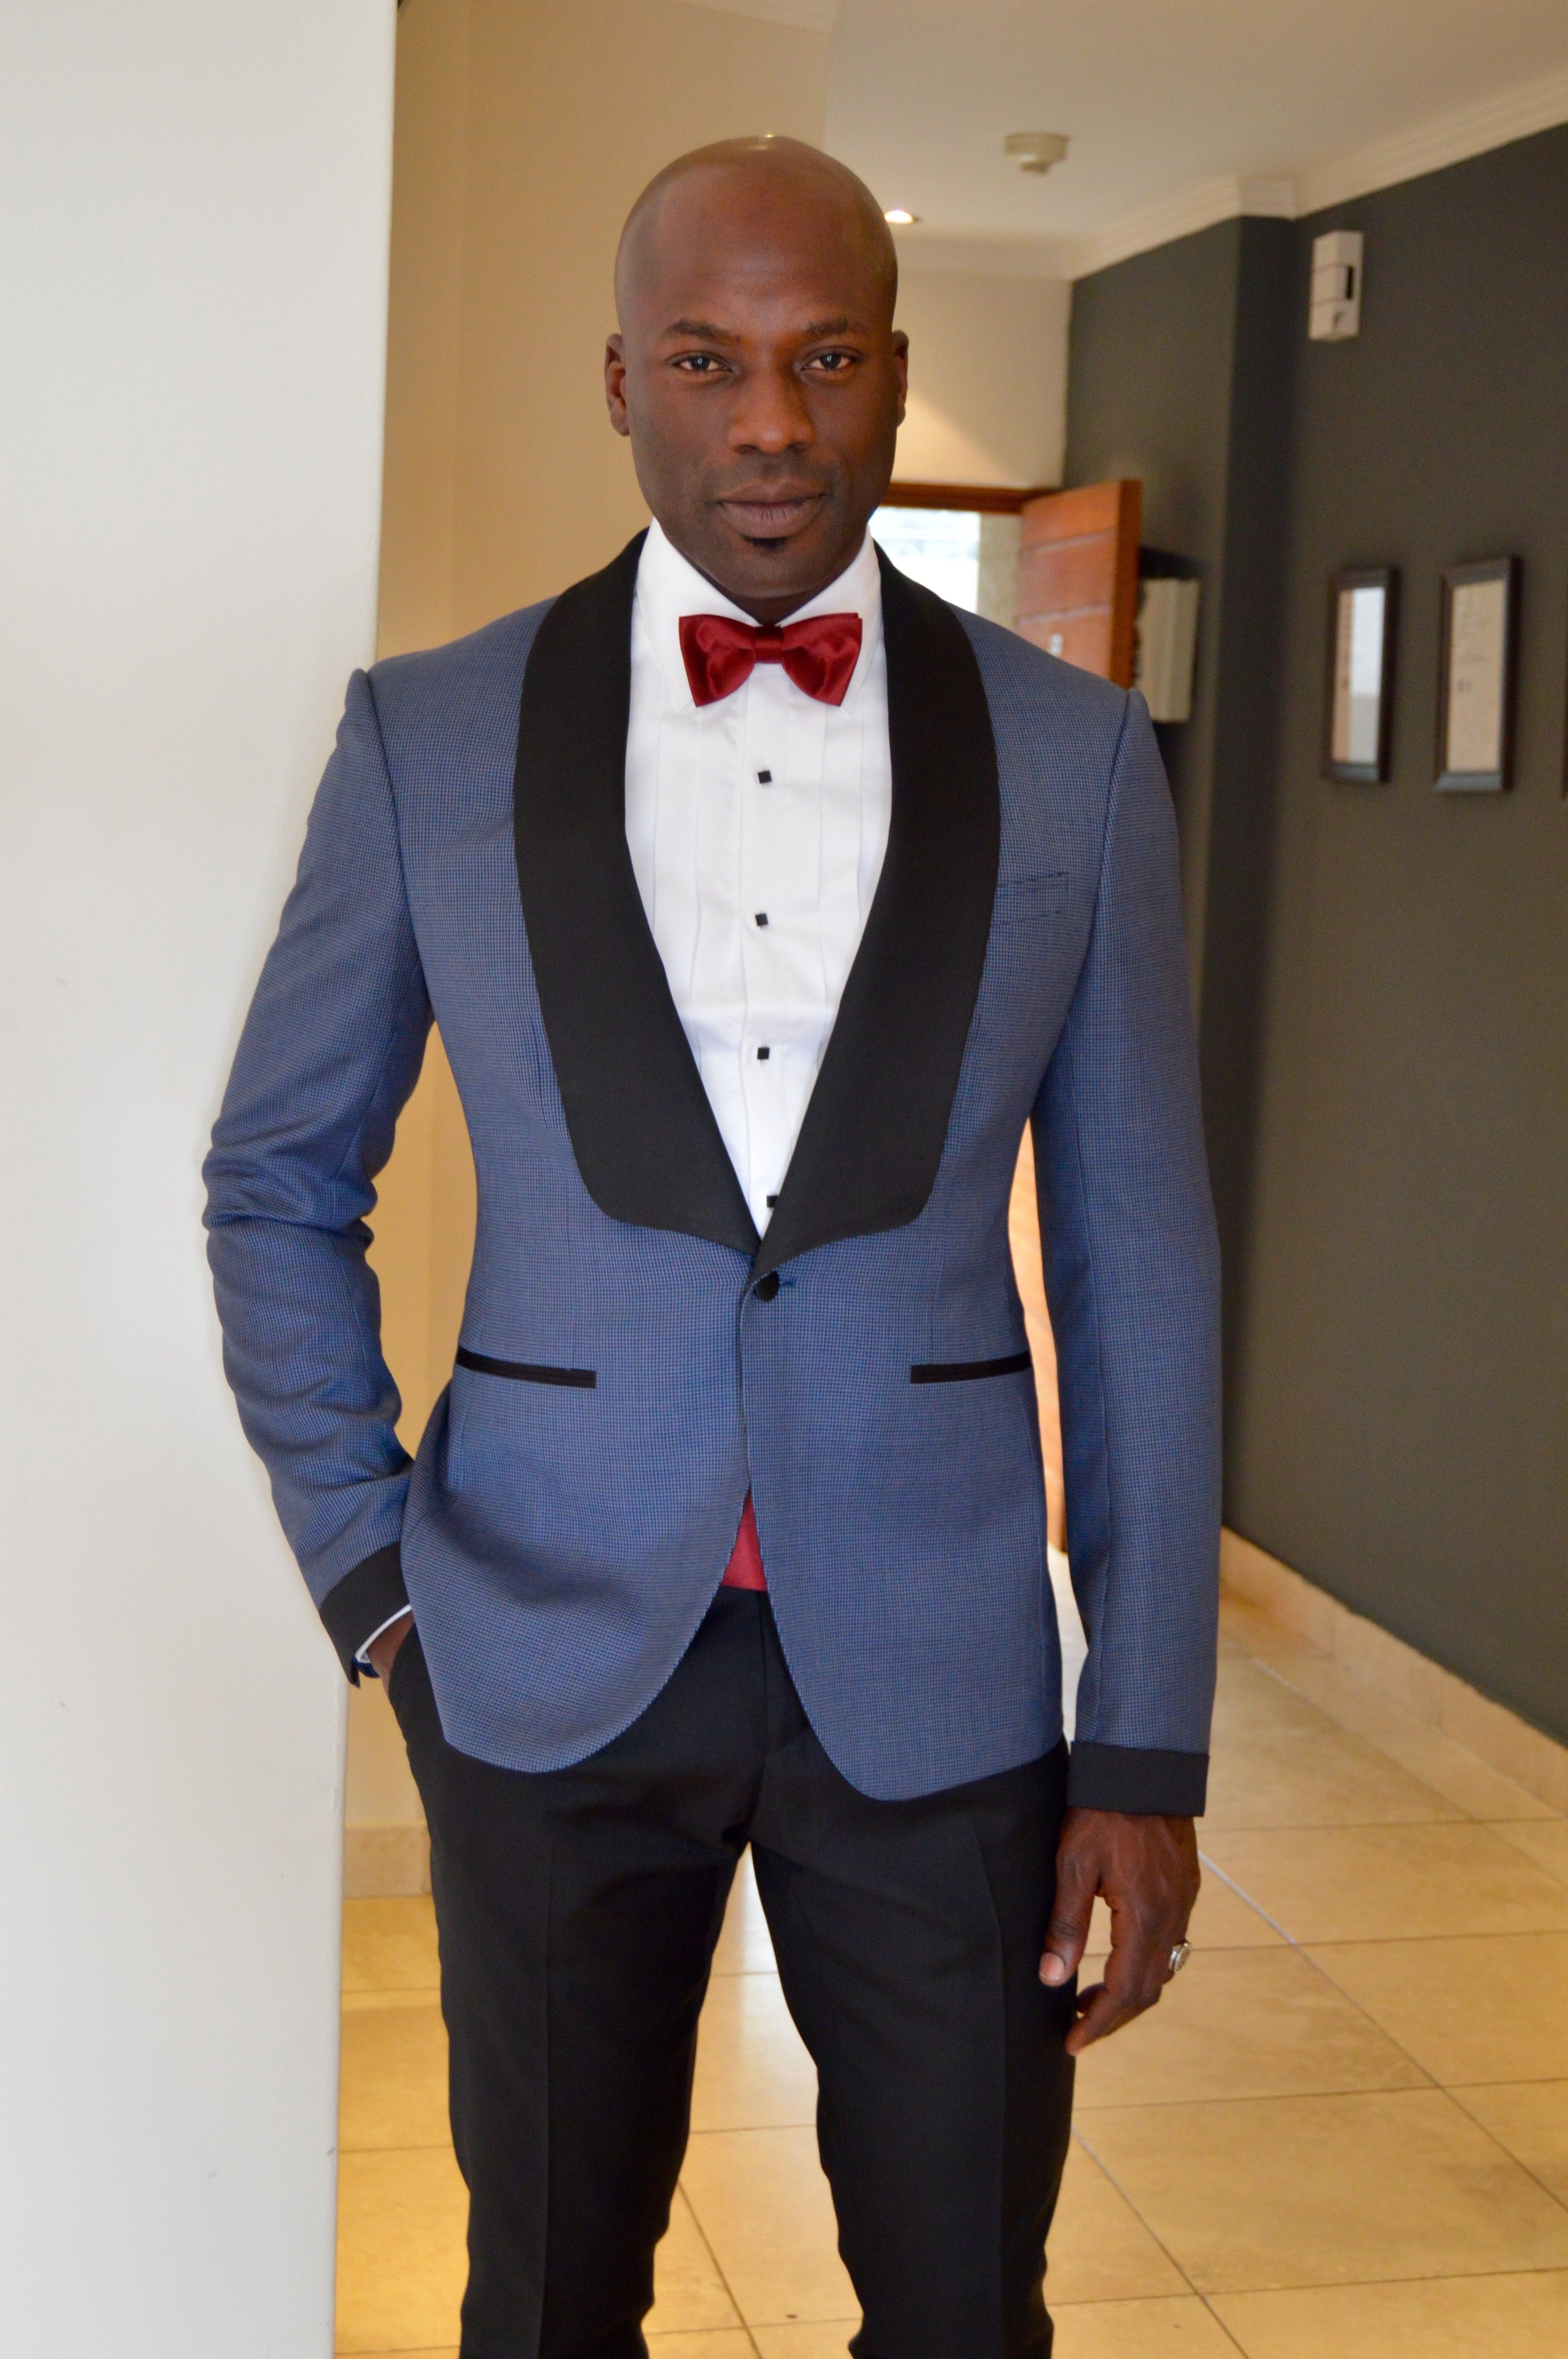 LM Tailored Wedding Suit for JC | LM TAILORED SUIT | Pinterest